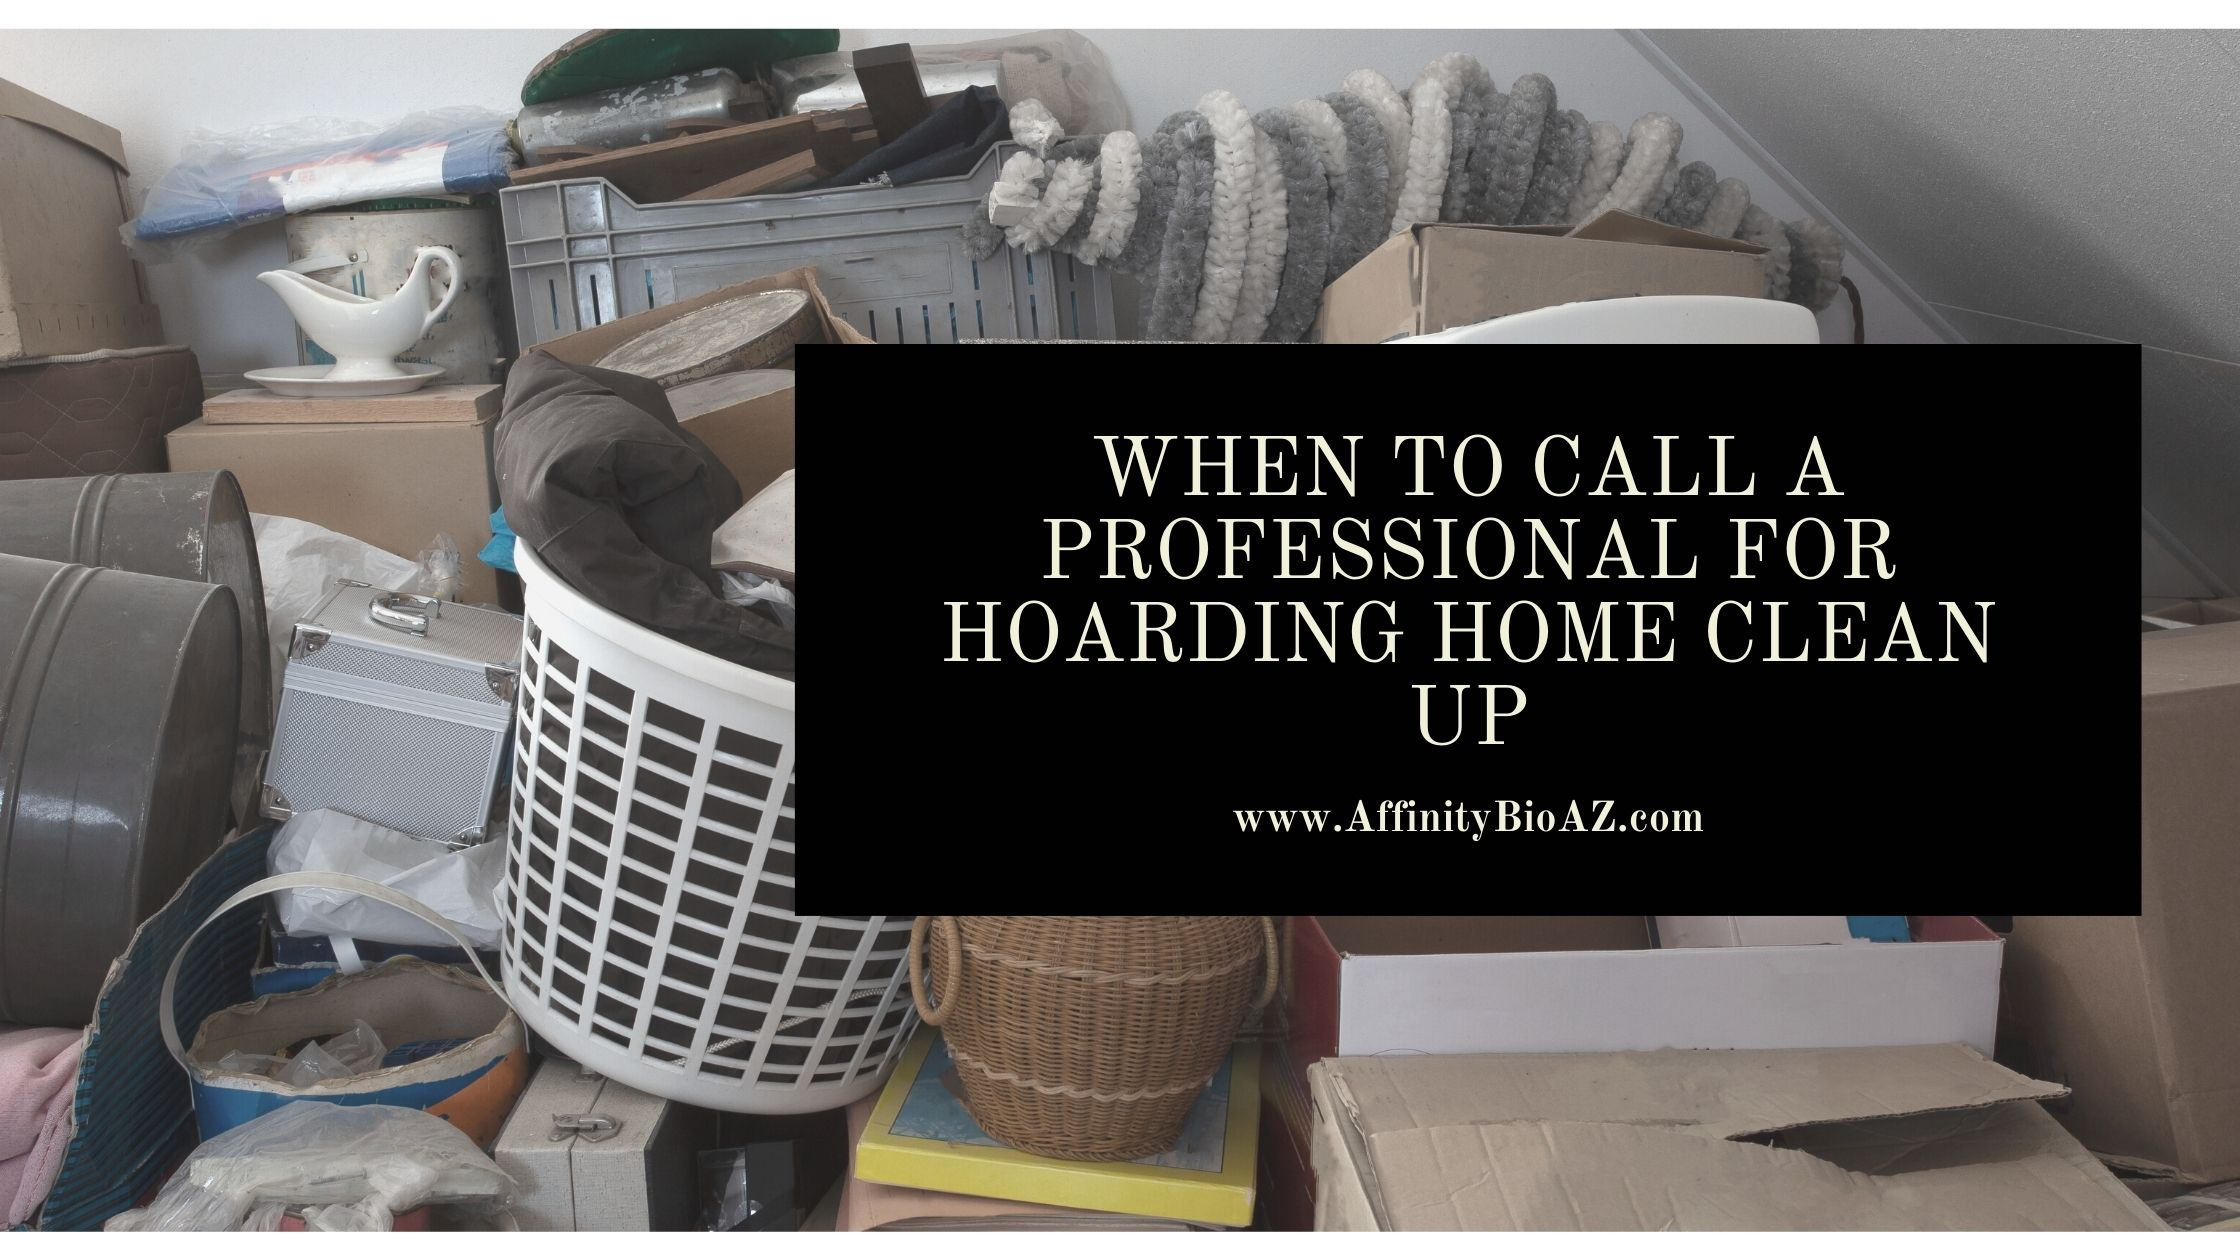 When to Call a Professional for Hoarding Home Clean Up